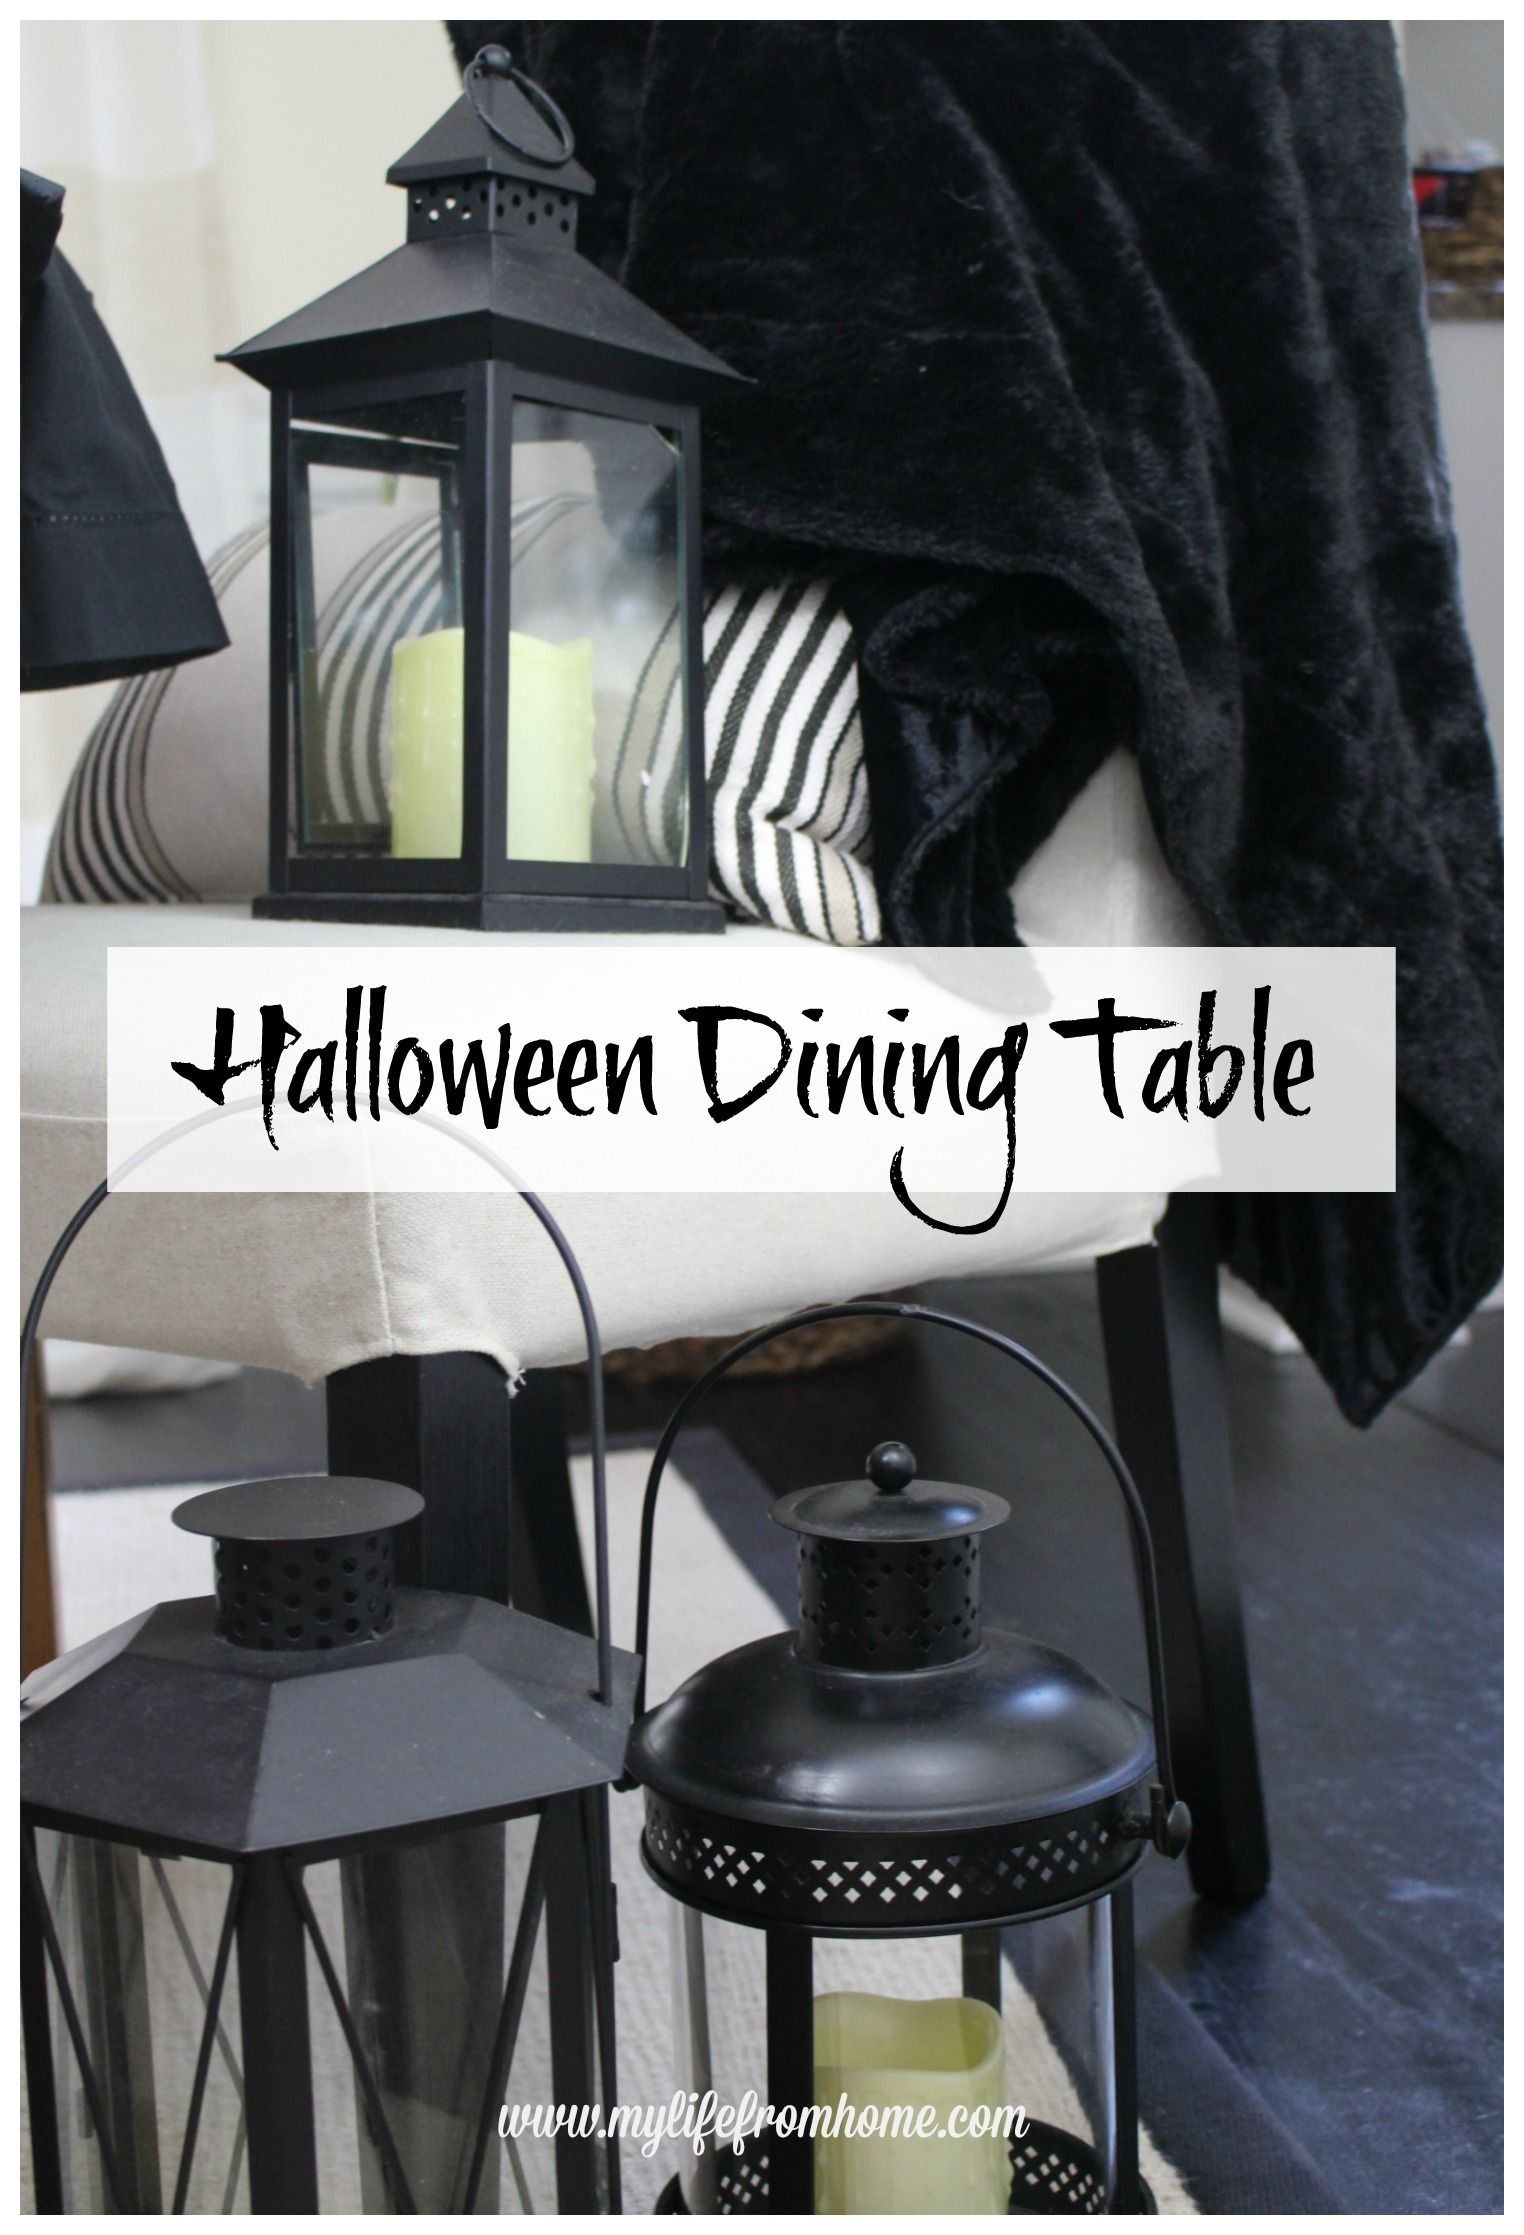 Halloween Table Scape Ideas  Halloween Decor  Dining Table Decor  Seasonal  Decor Ideas